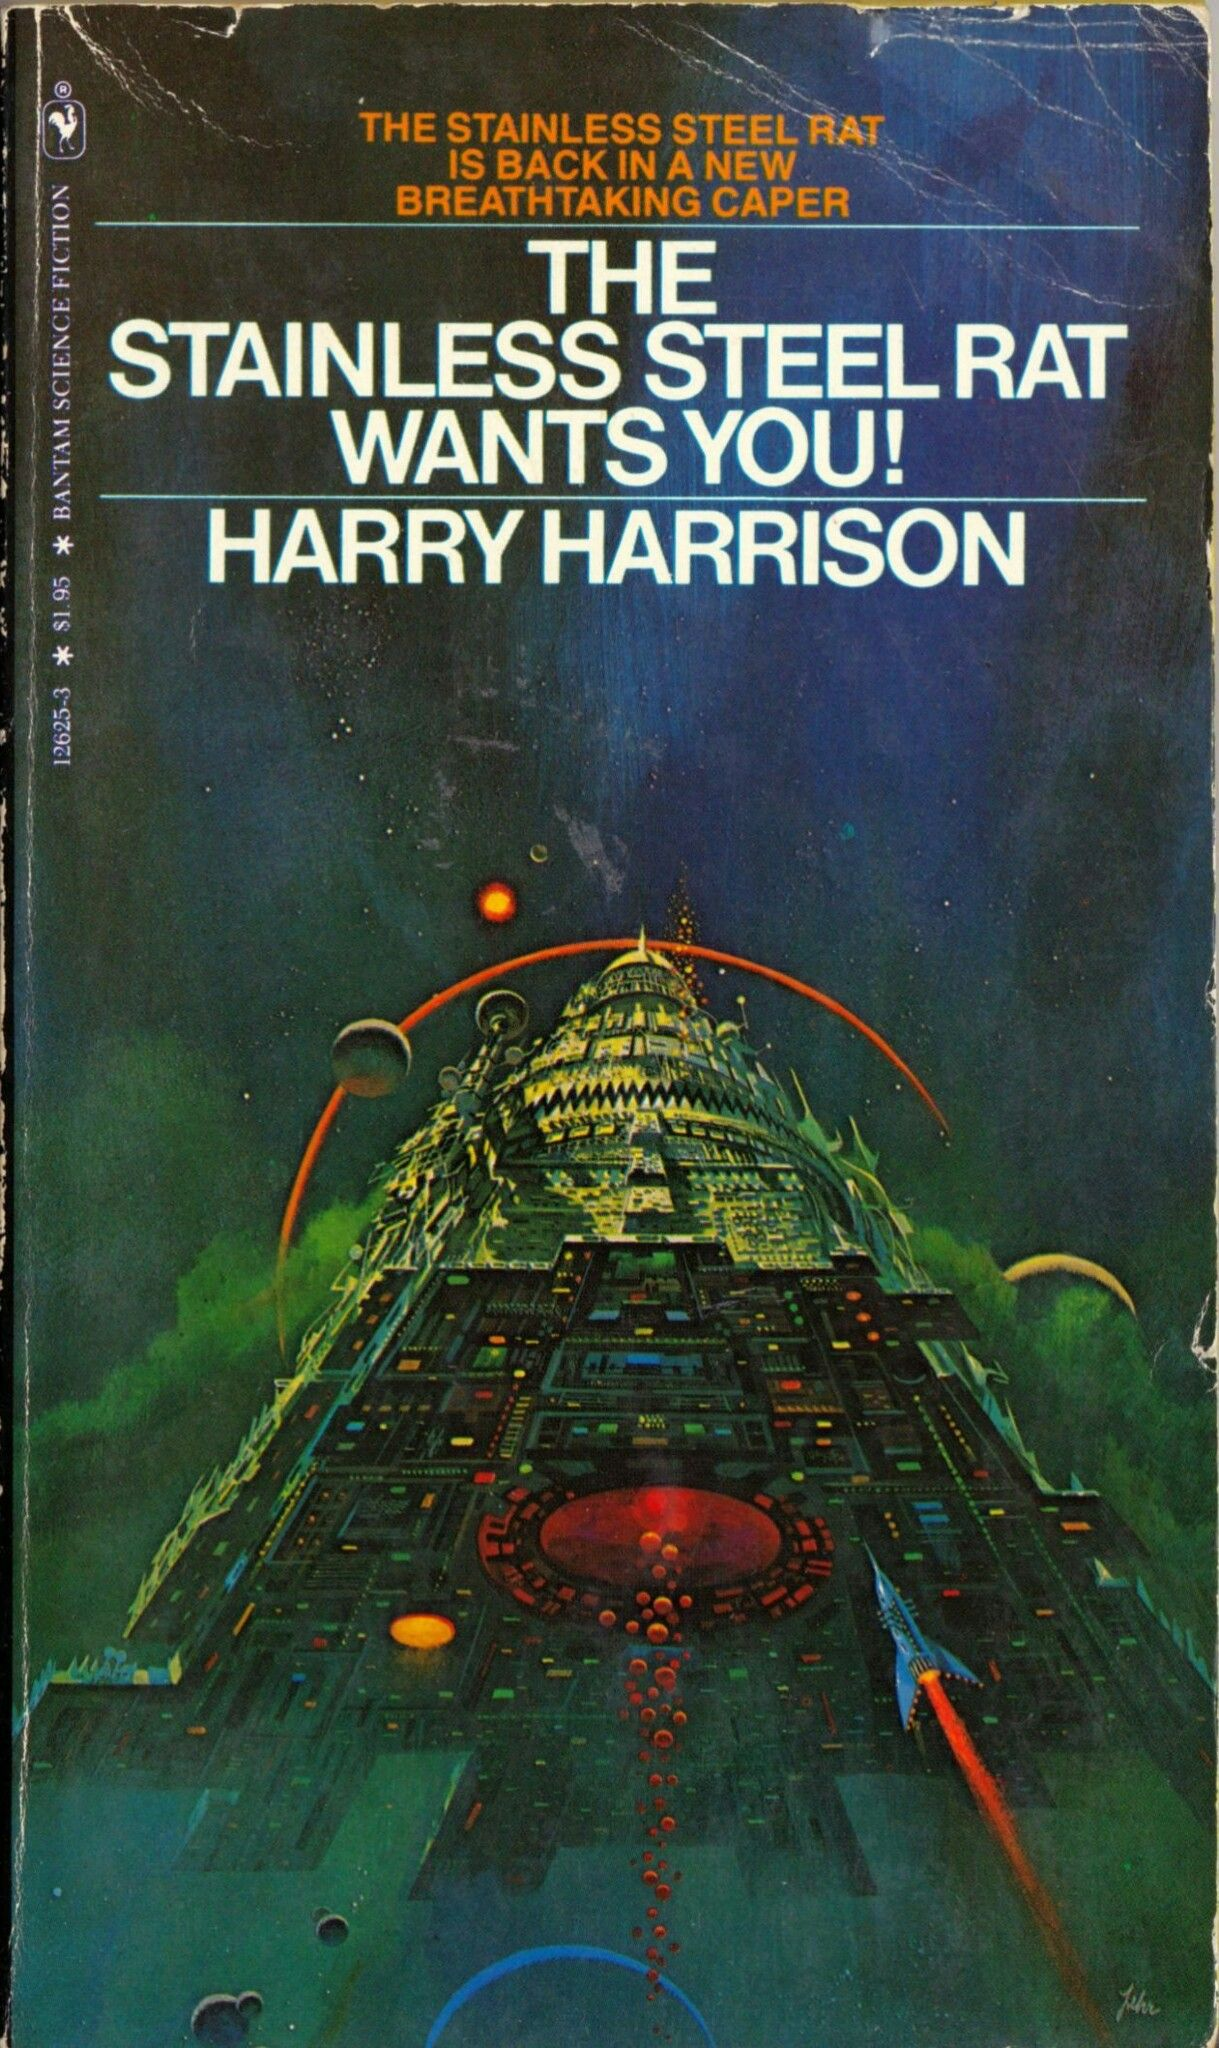 Pin by Rubbia on 16K + Book Covers | Science fiction